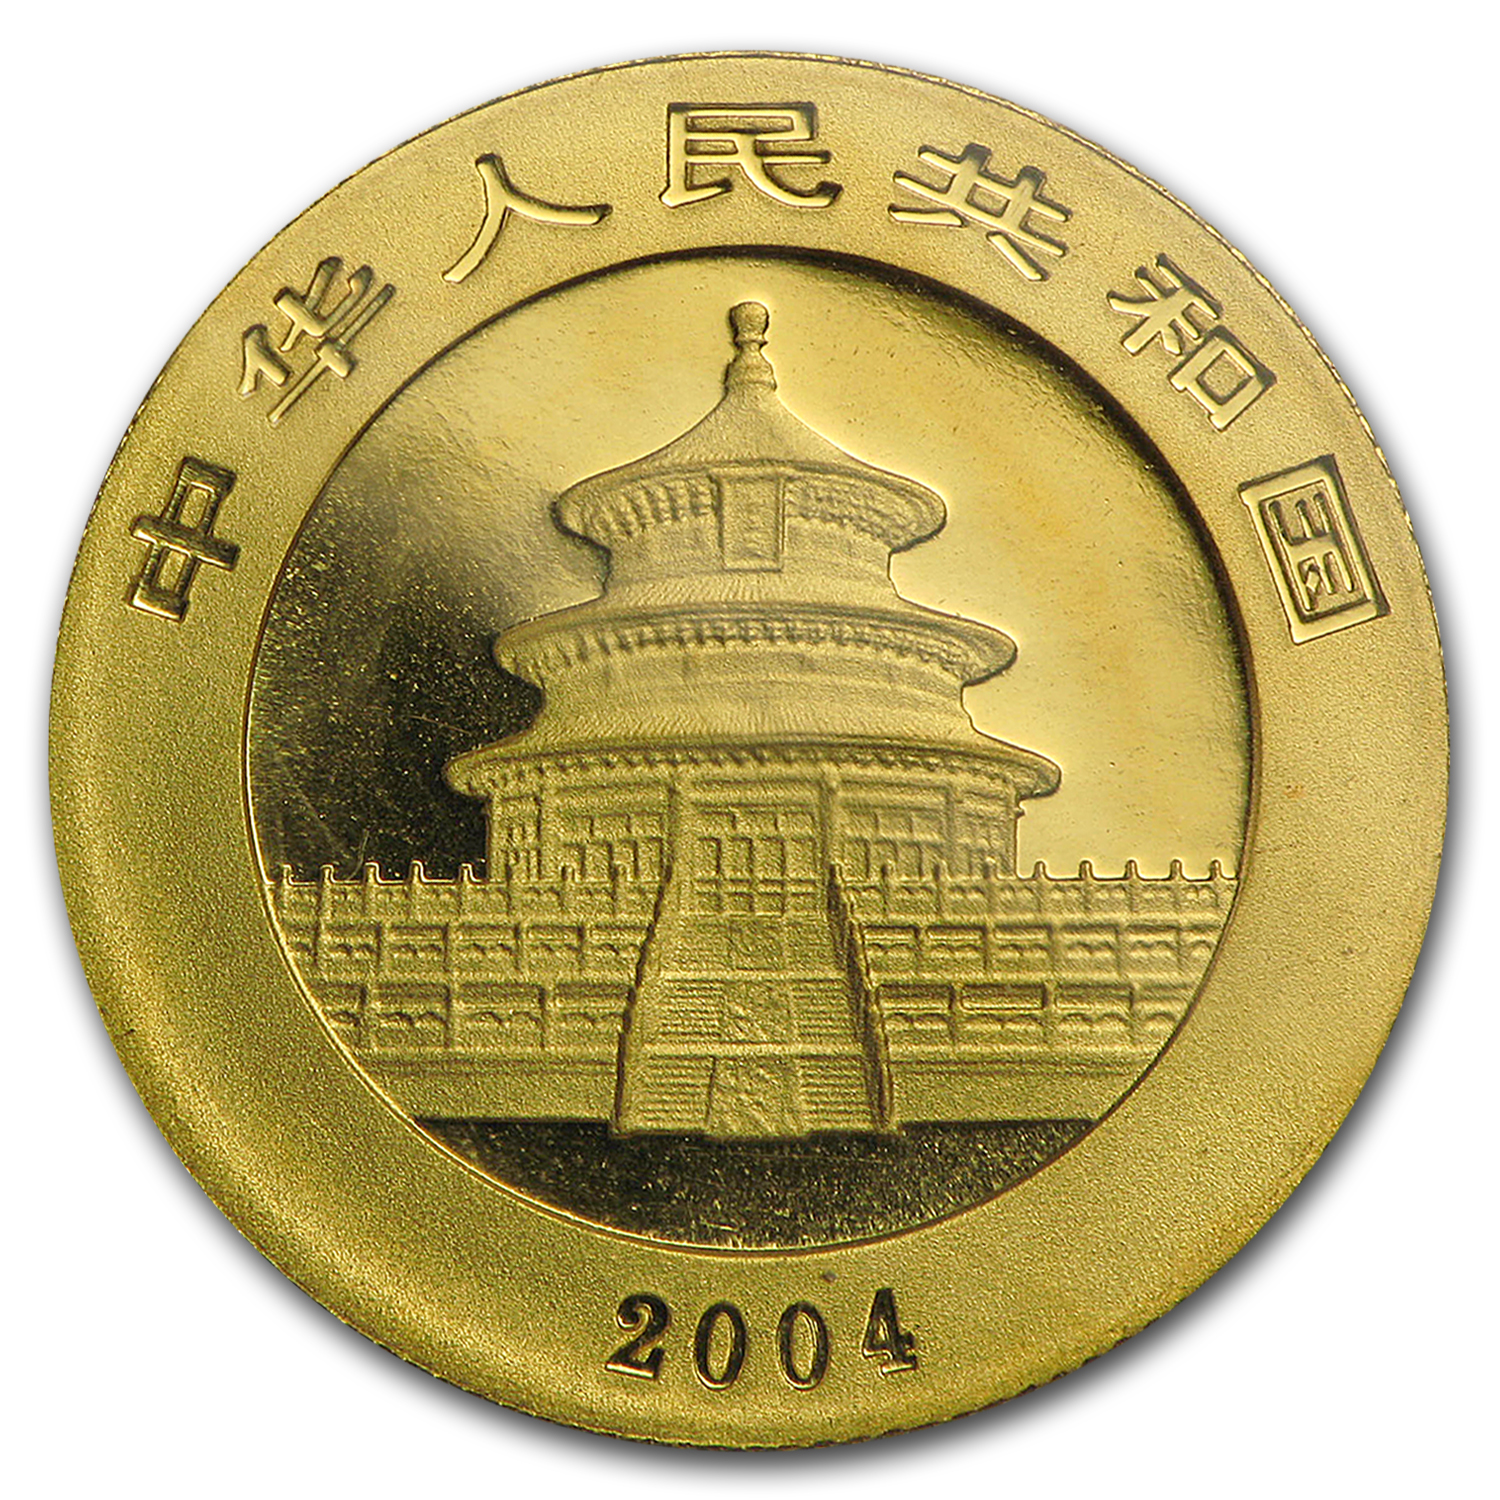 2004 1/4 oz Gold Chinese Panda BU (Sealed)